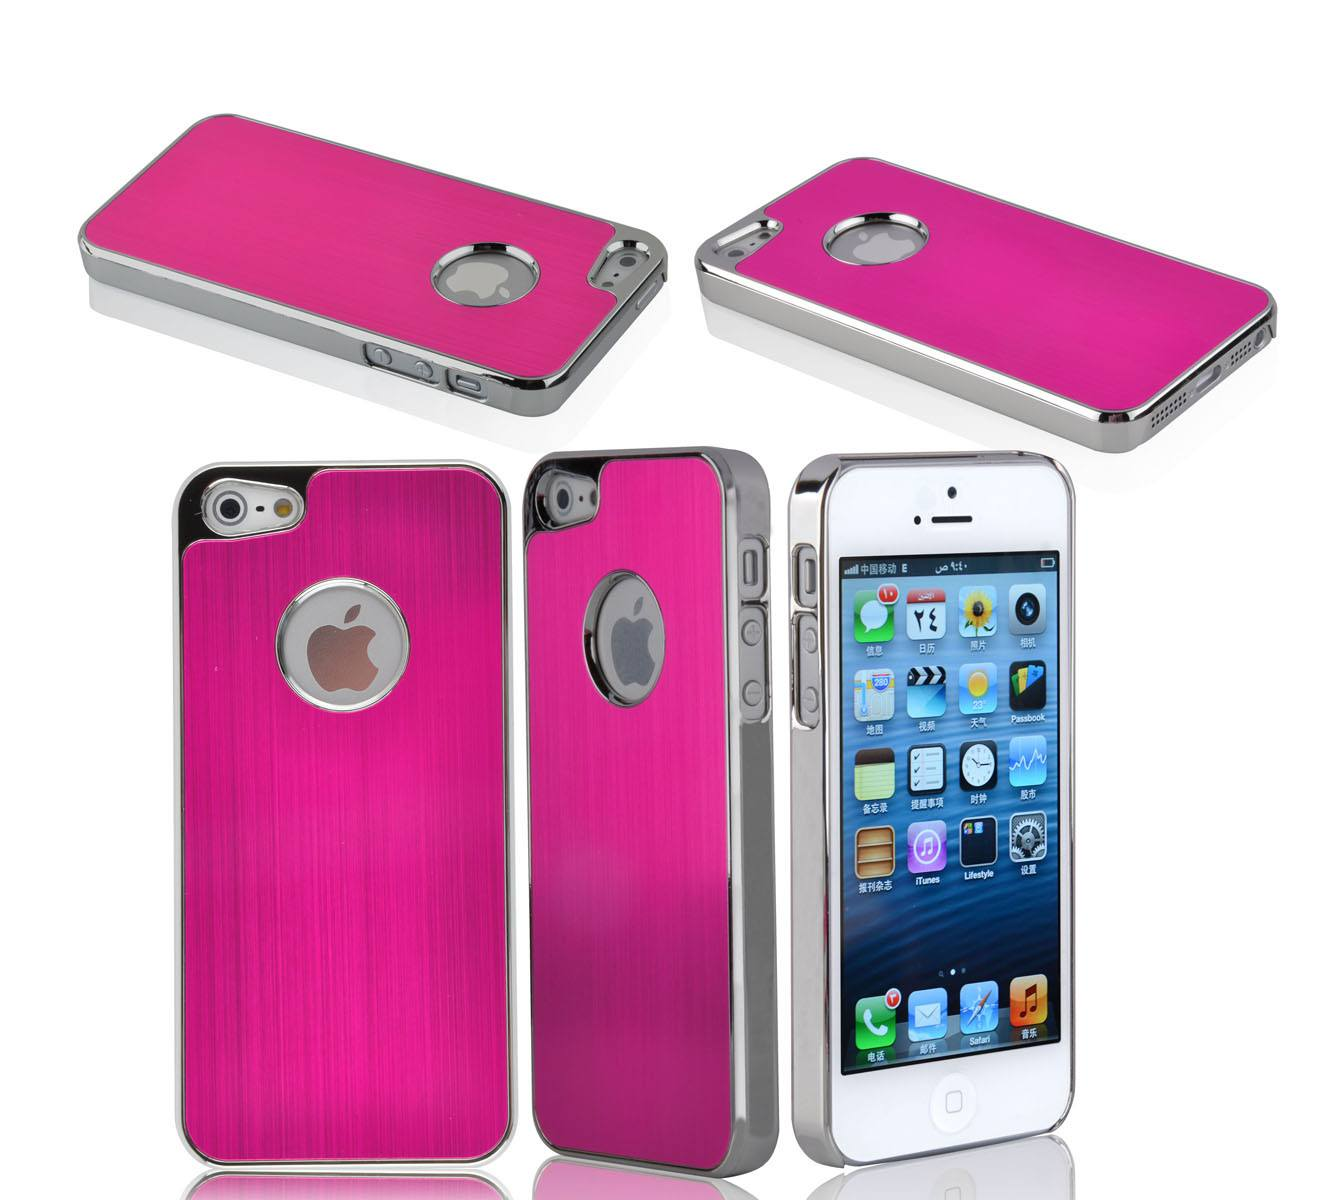 iPhone 5 Premium Brushed Aluminum Case - Hot Pink